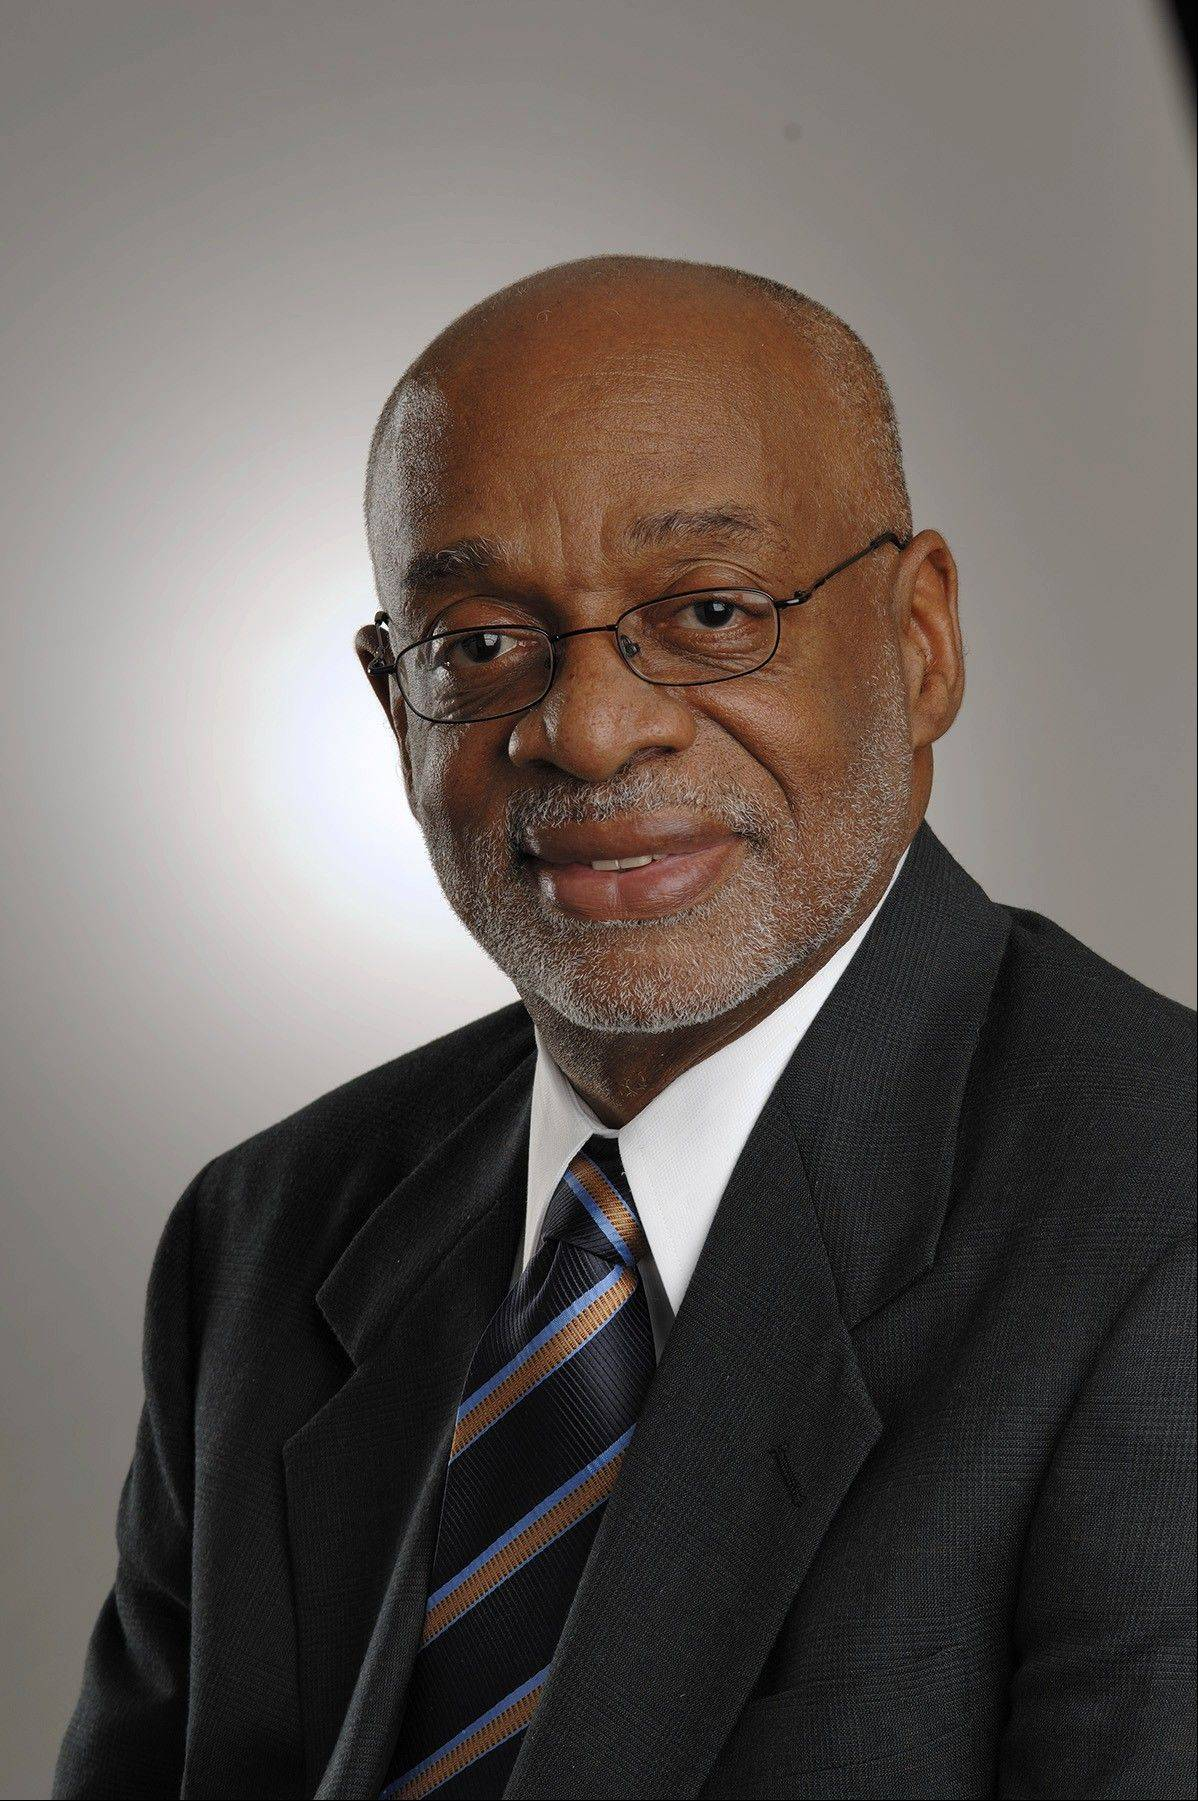 Robert Gilliam